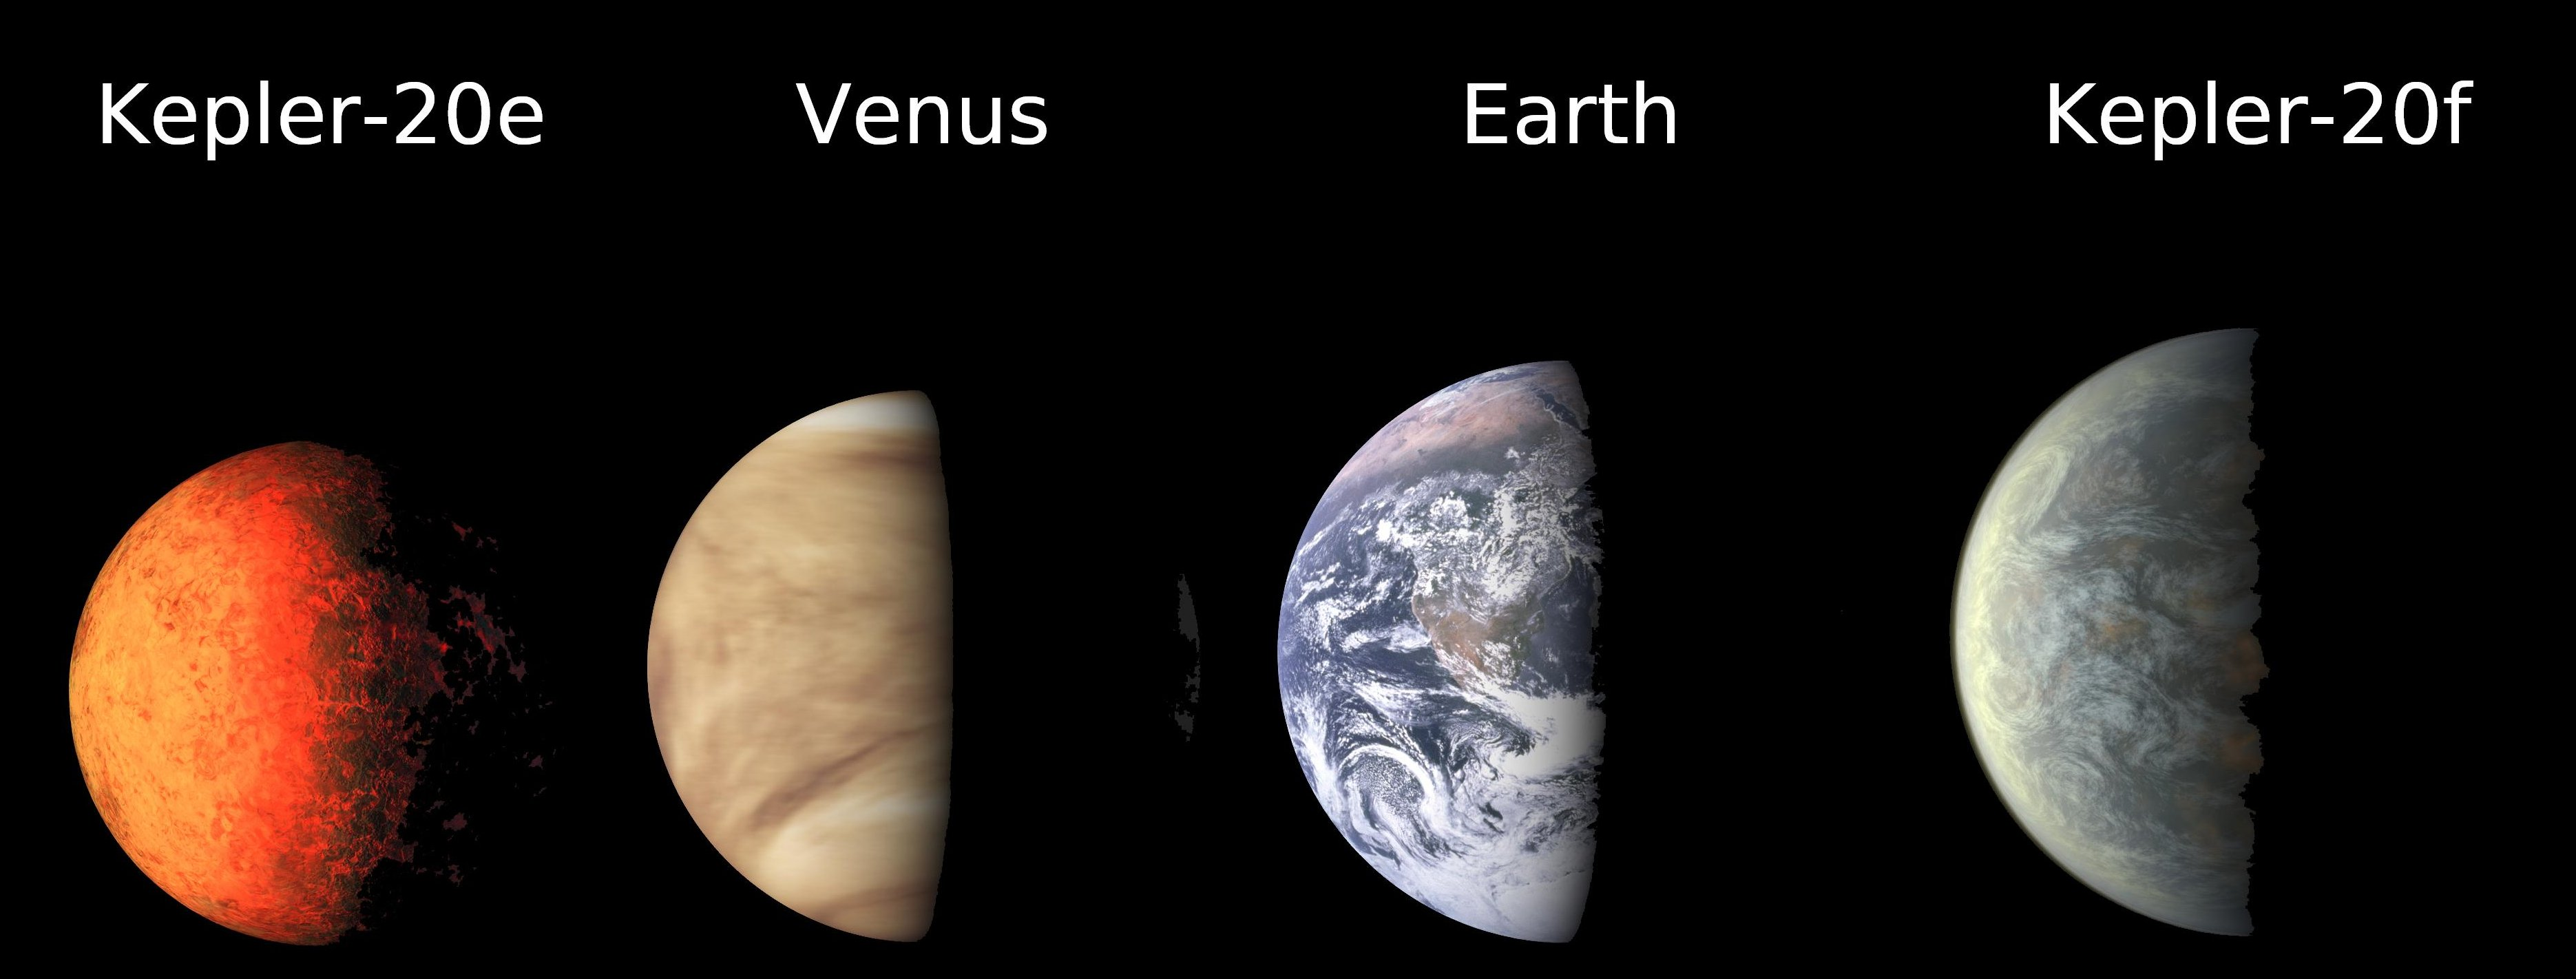 (c) NASA http://keplergo.arc.nasa.gov/